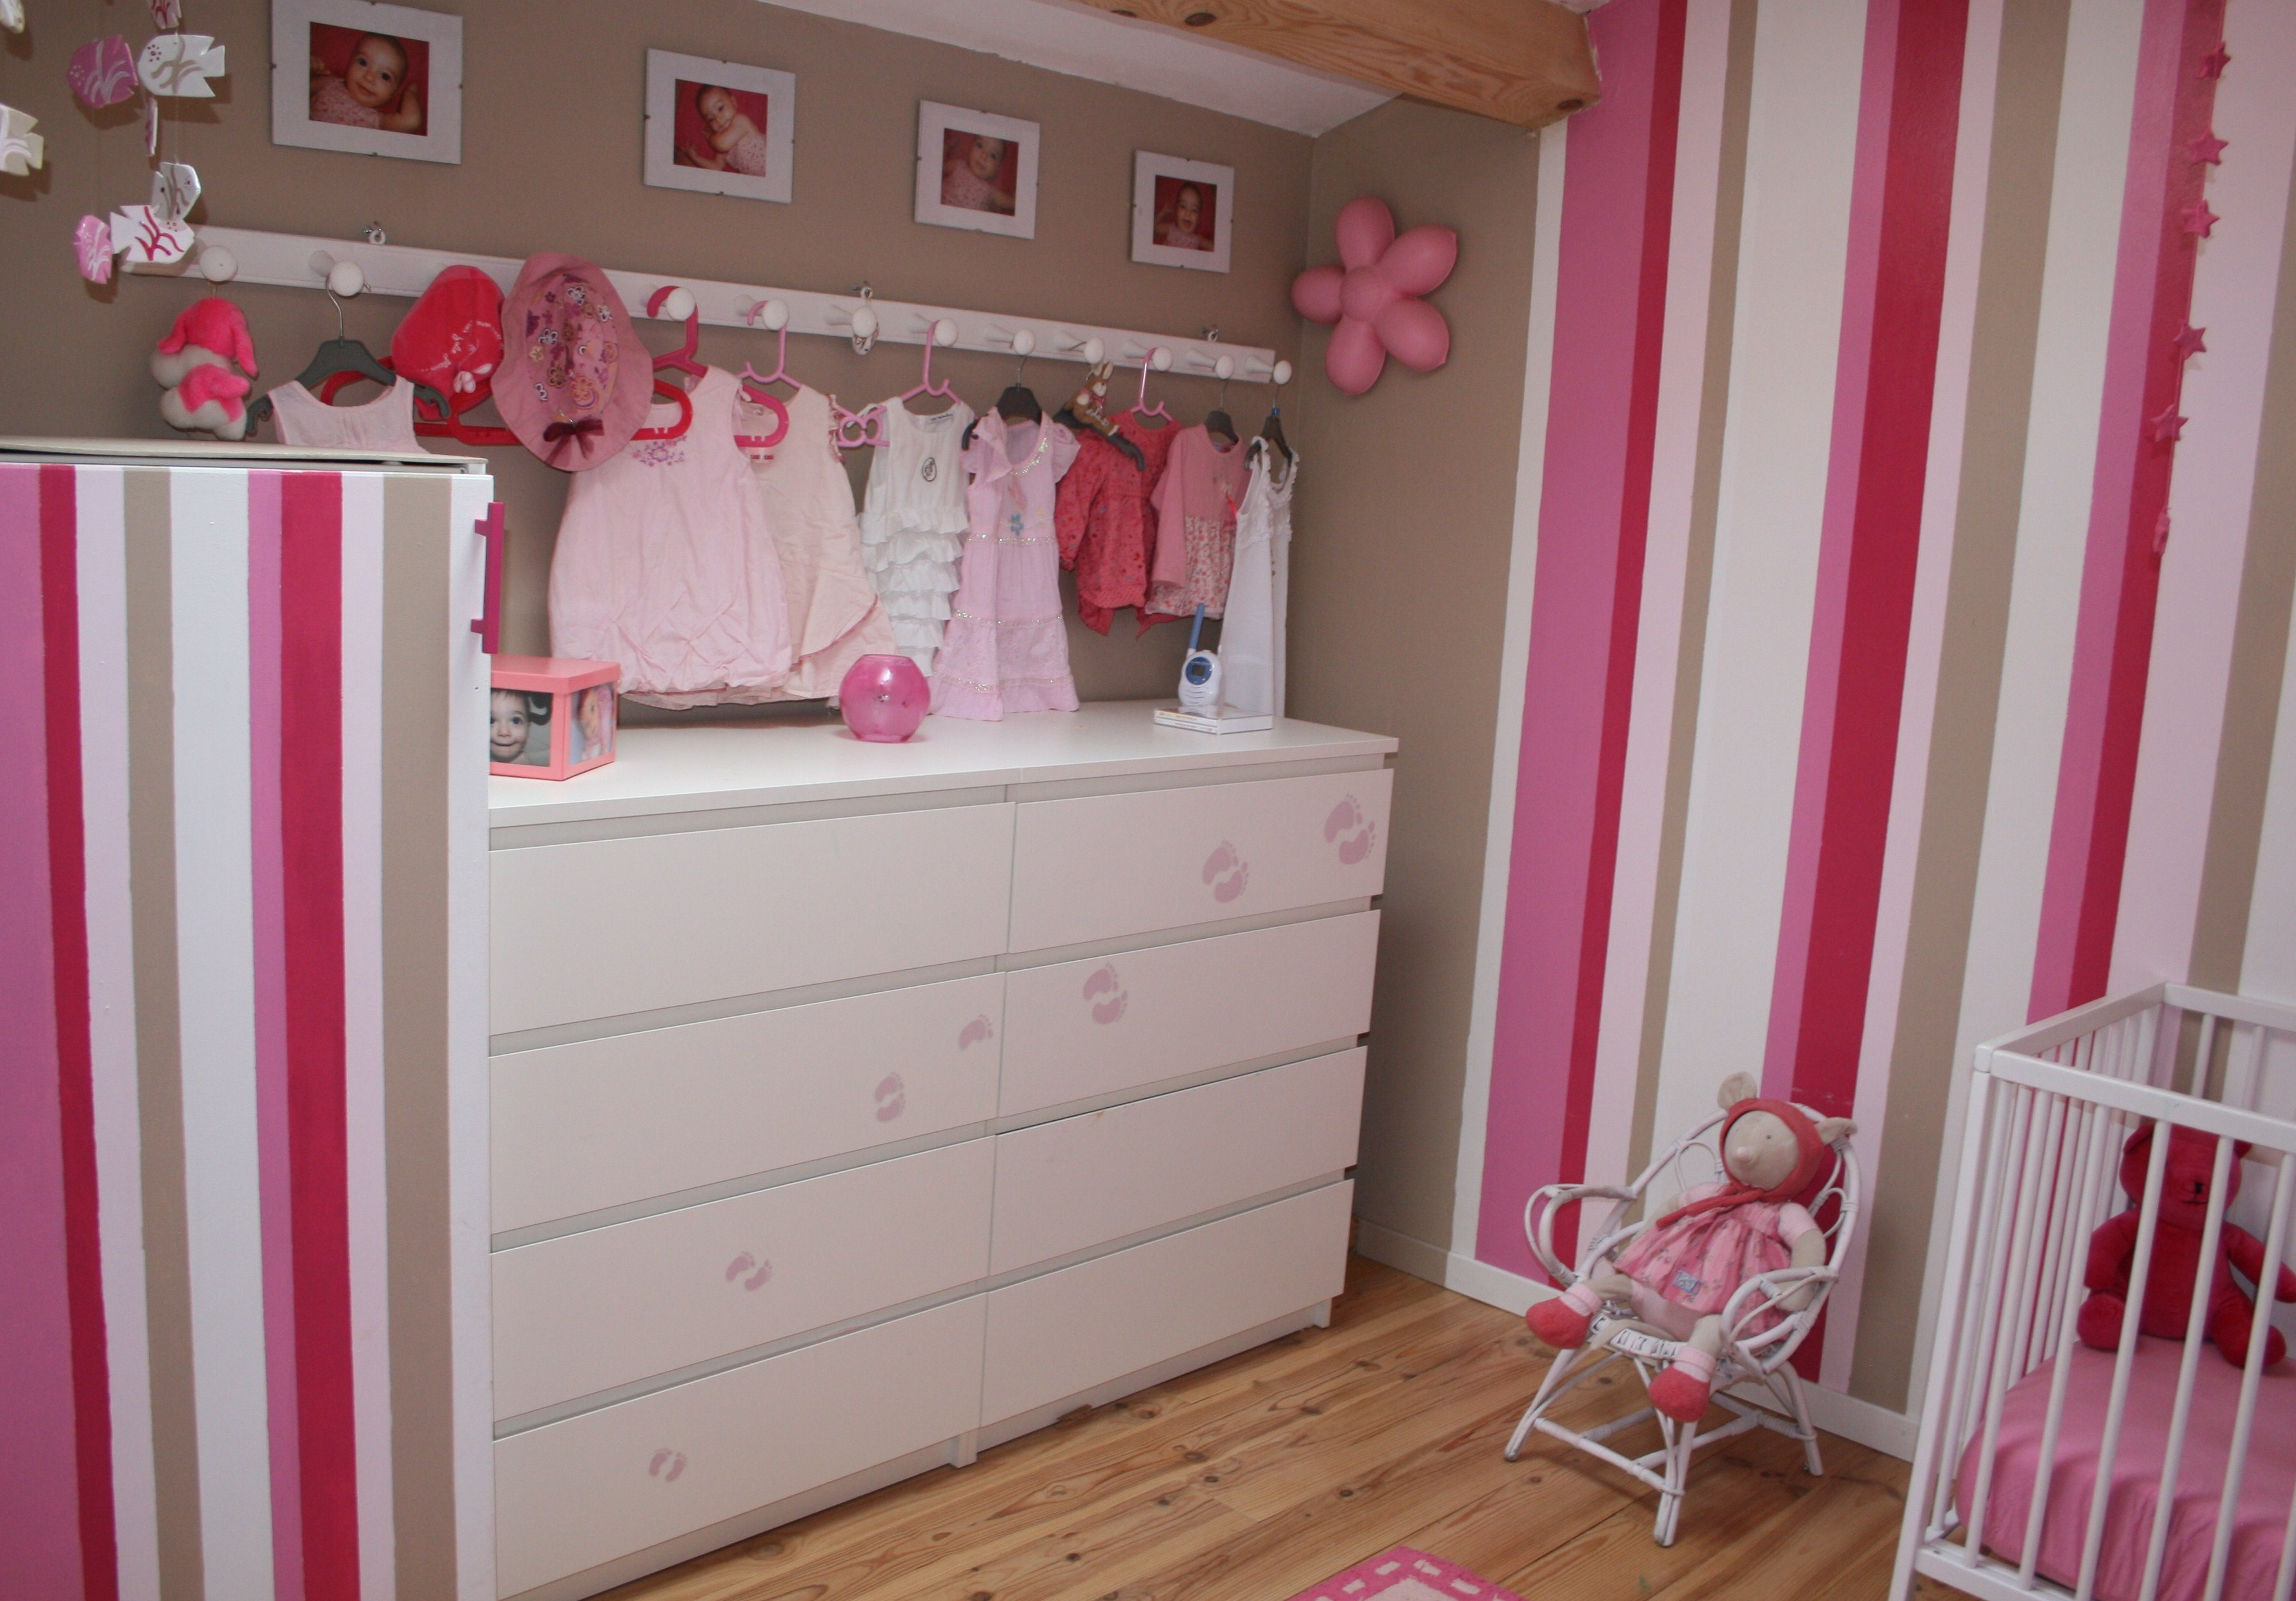 Decoration chambre bebe fille photo interesting for Deco chambre petite fille